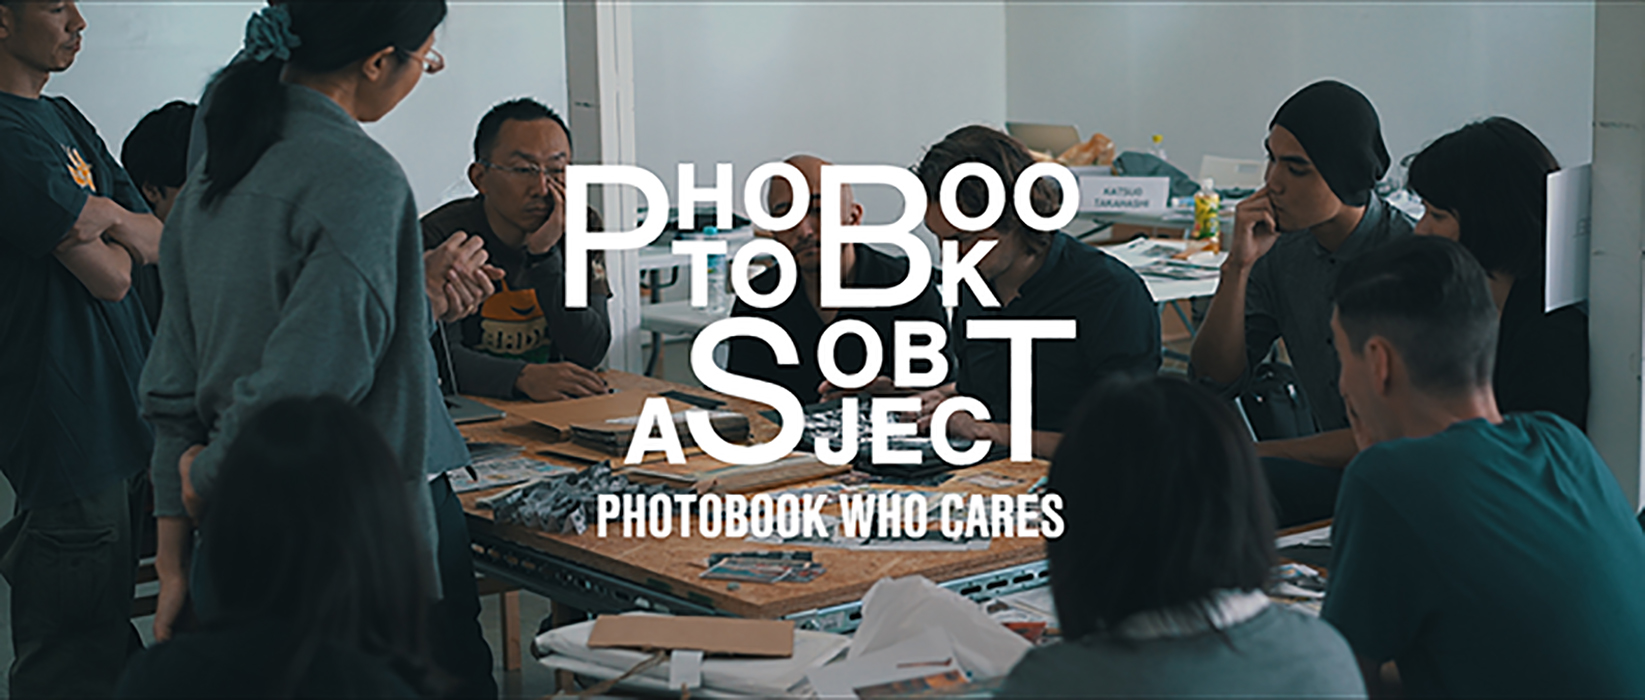 Photobook As Object